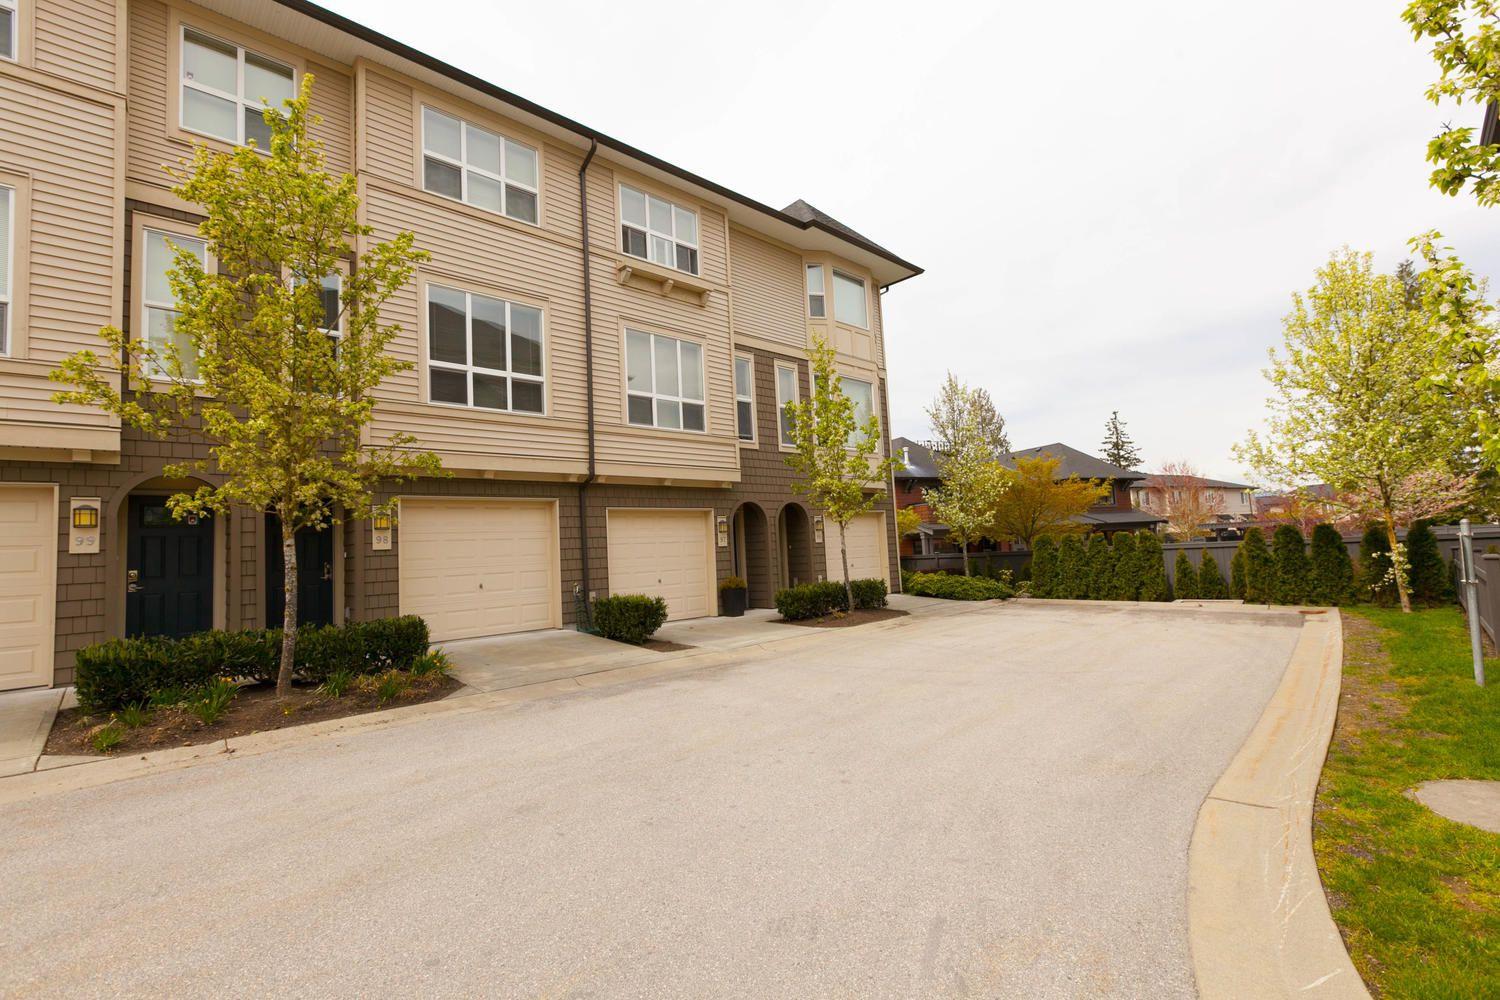 """Photo 42: Photos: 97 7938 209 Street in Langley: Willoughby Heights Townhouse for sale in """"Red Maple Park"""" : MLS®# R2260950"""